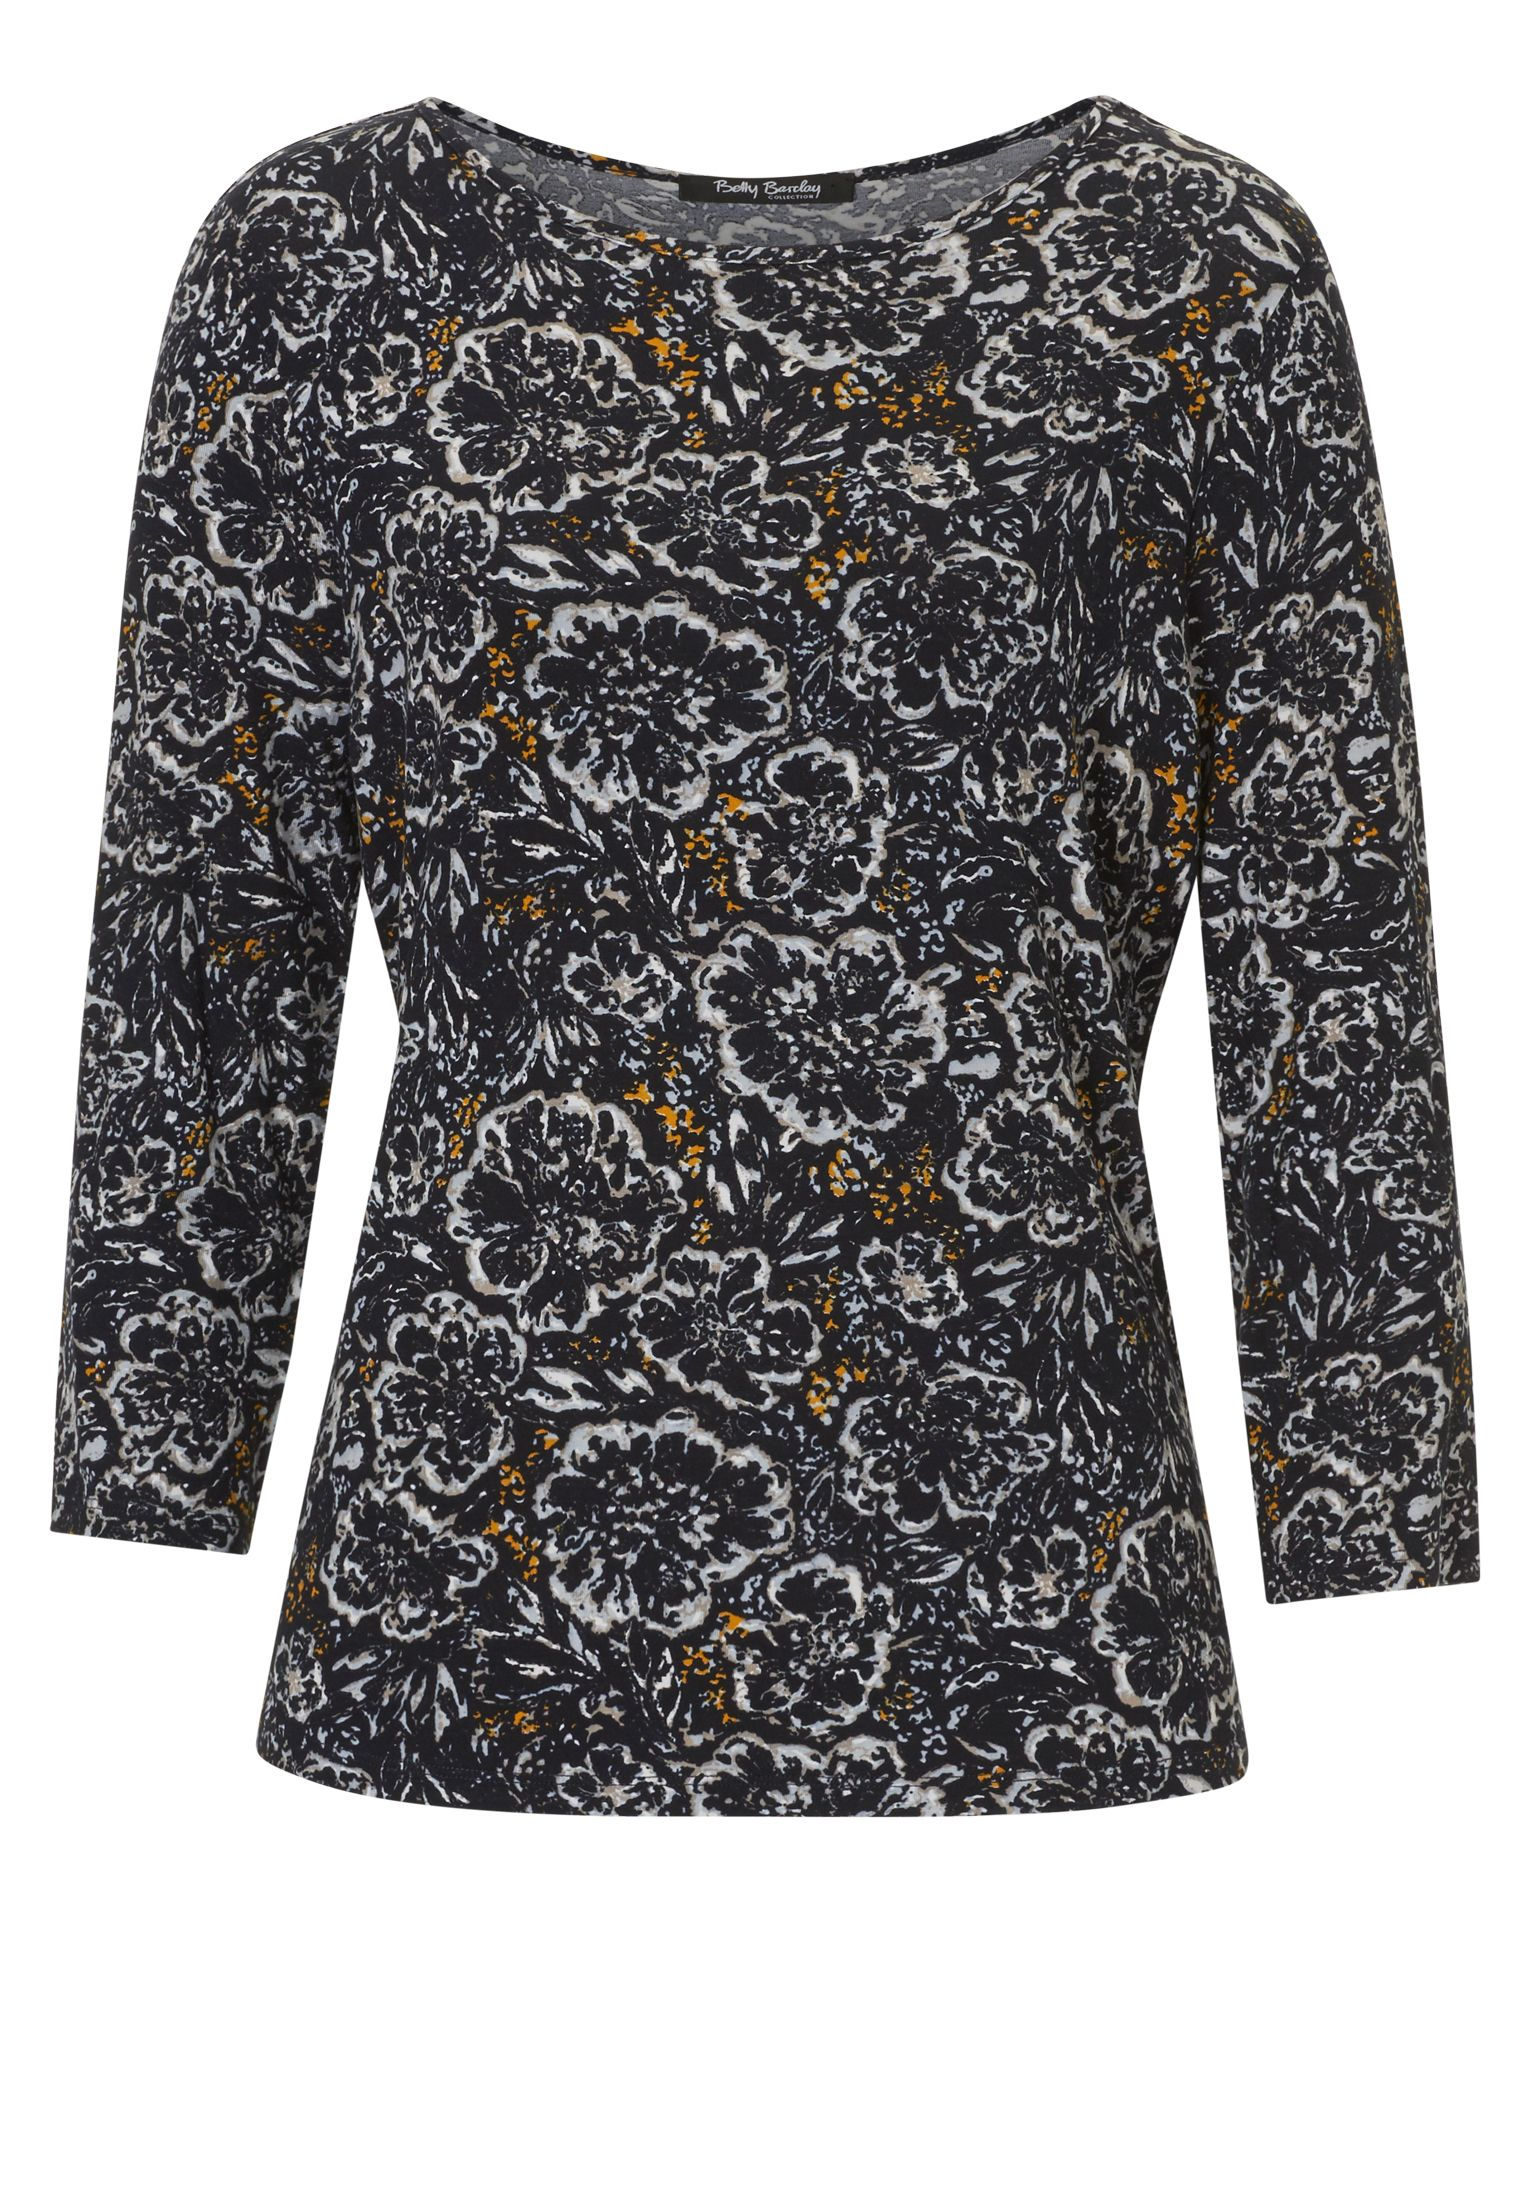 Betty Barclay Floral print top, Multi-Coloured